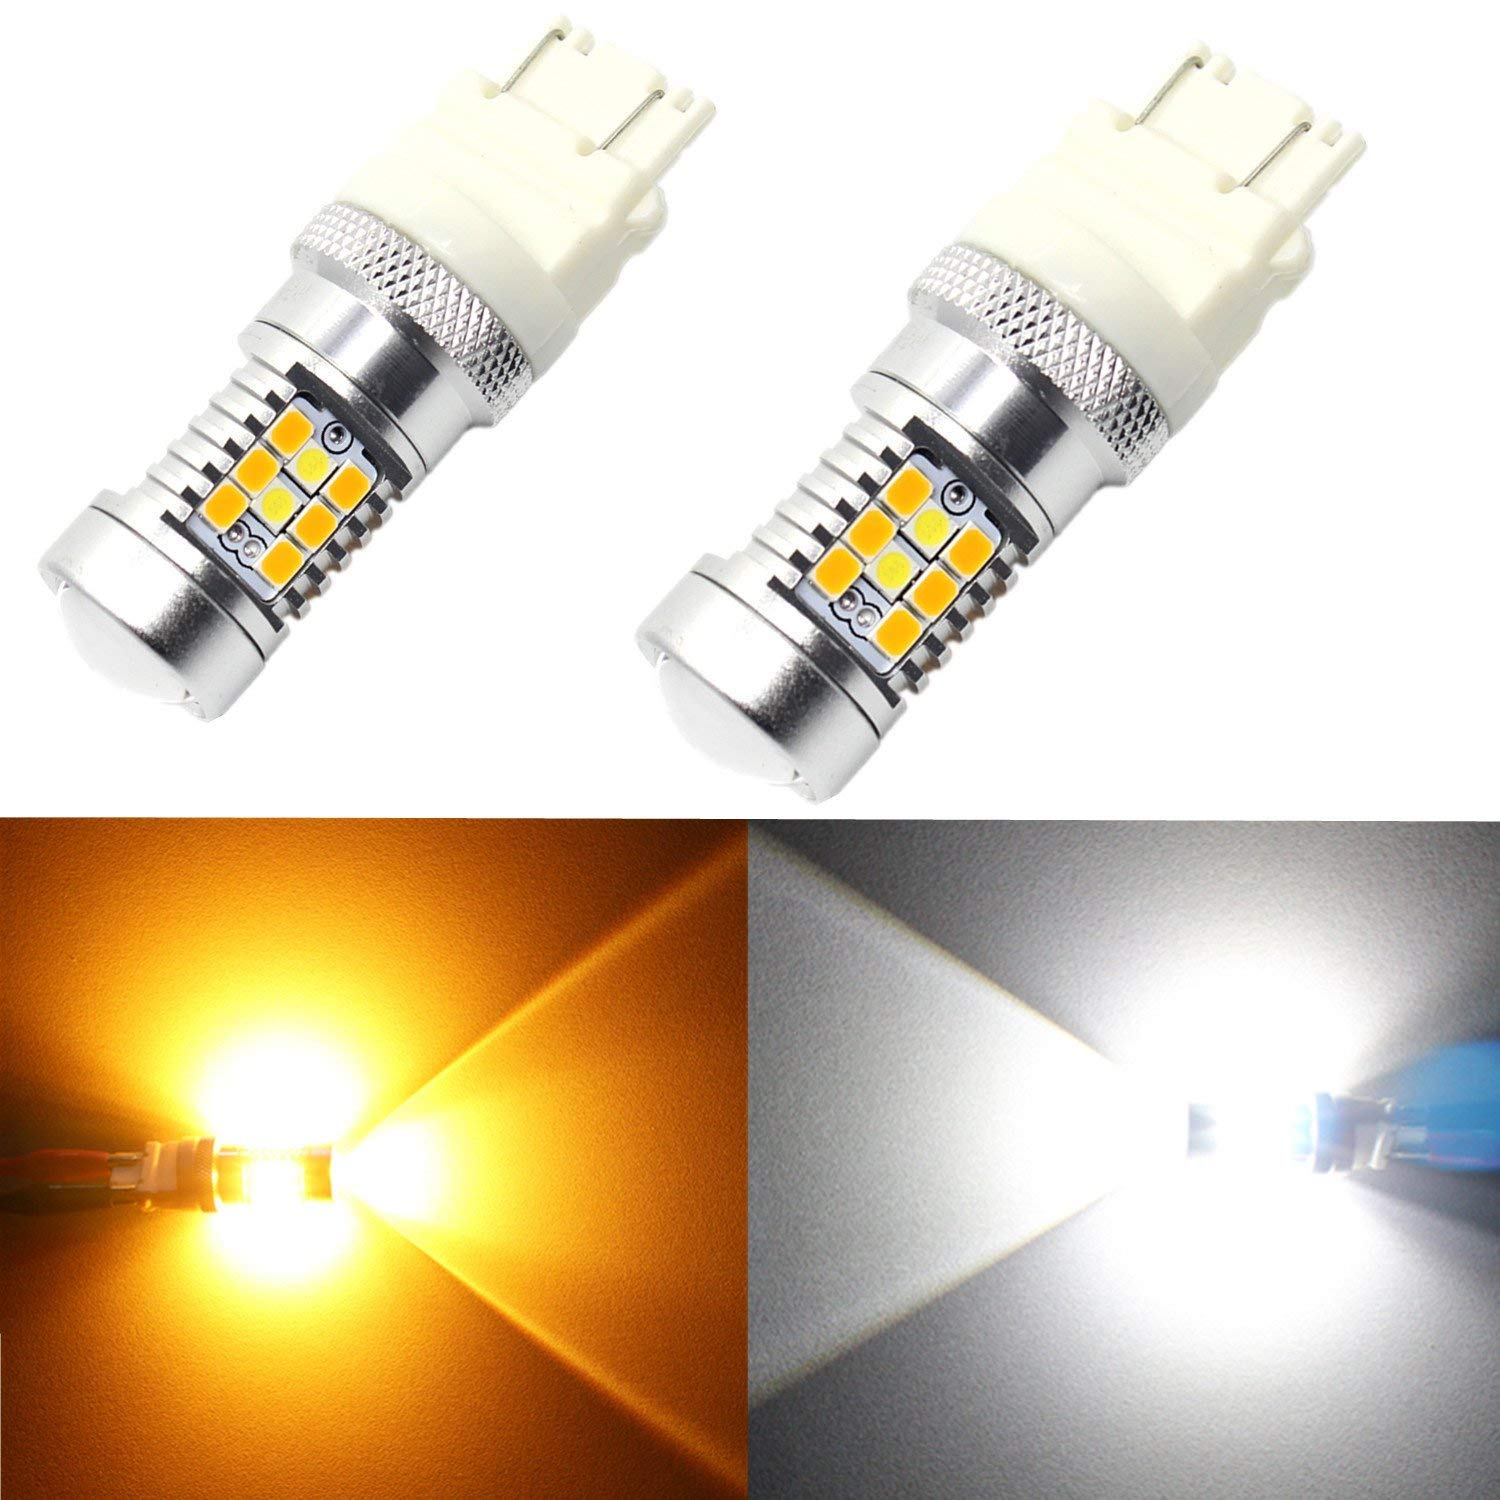 Alla 194 168 2825 175 W5W 158 161 192 T10 Wedge Super Bright High Power 3014 18-SMD LED Lights Bulbs for License Plate Interior Map Dome Door Courtesy Trunk Cargo Area Exterior Side Marker Light (Red) Alla Lighting